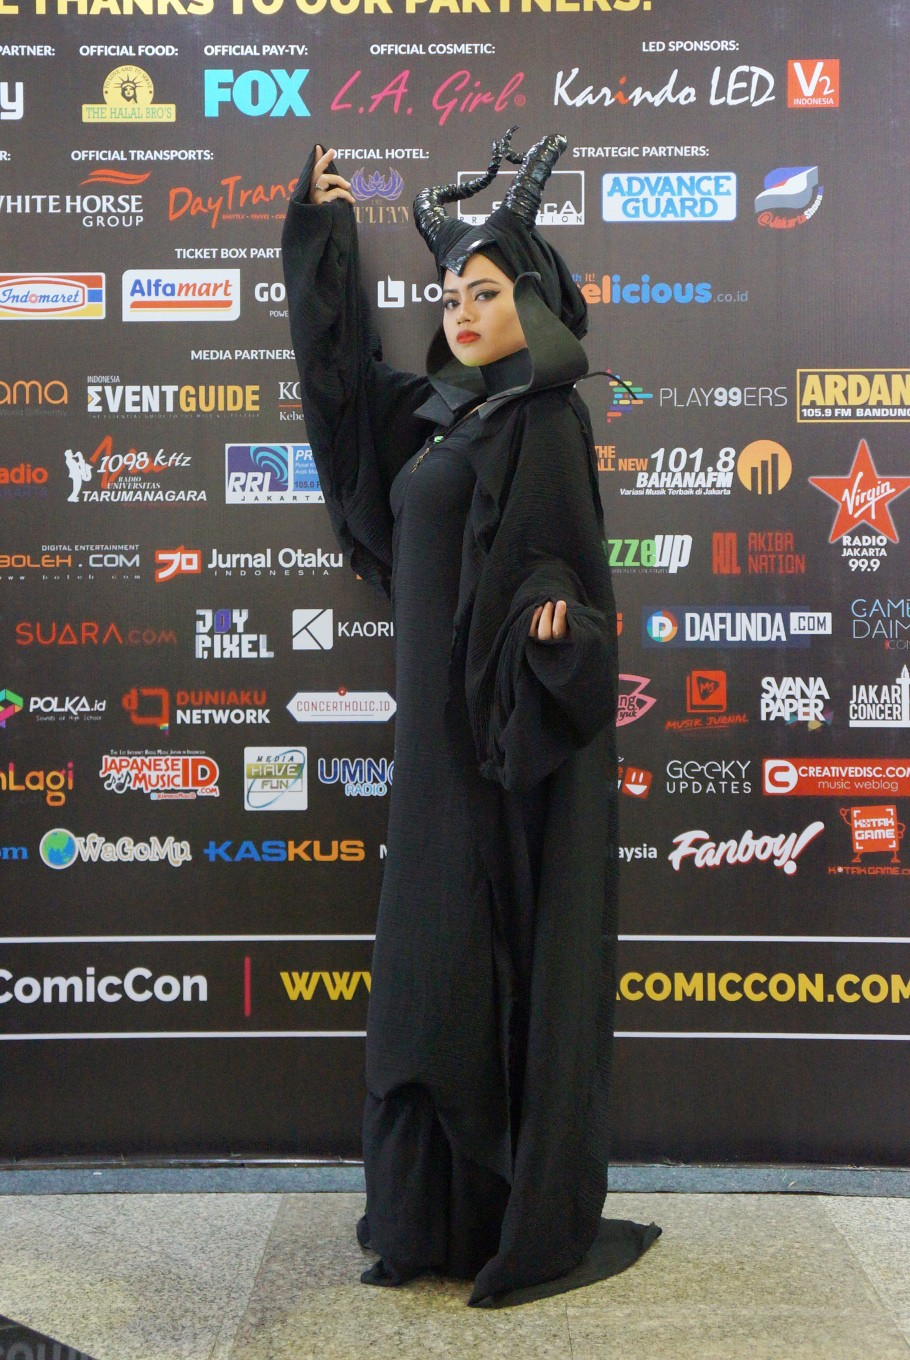 A visitor is dressed as Walt Disney Pictures' 'Maleficent' during the 2017 Indonesia Comic Con.